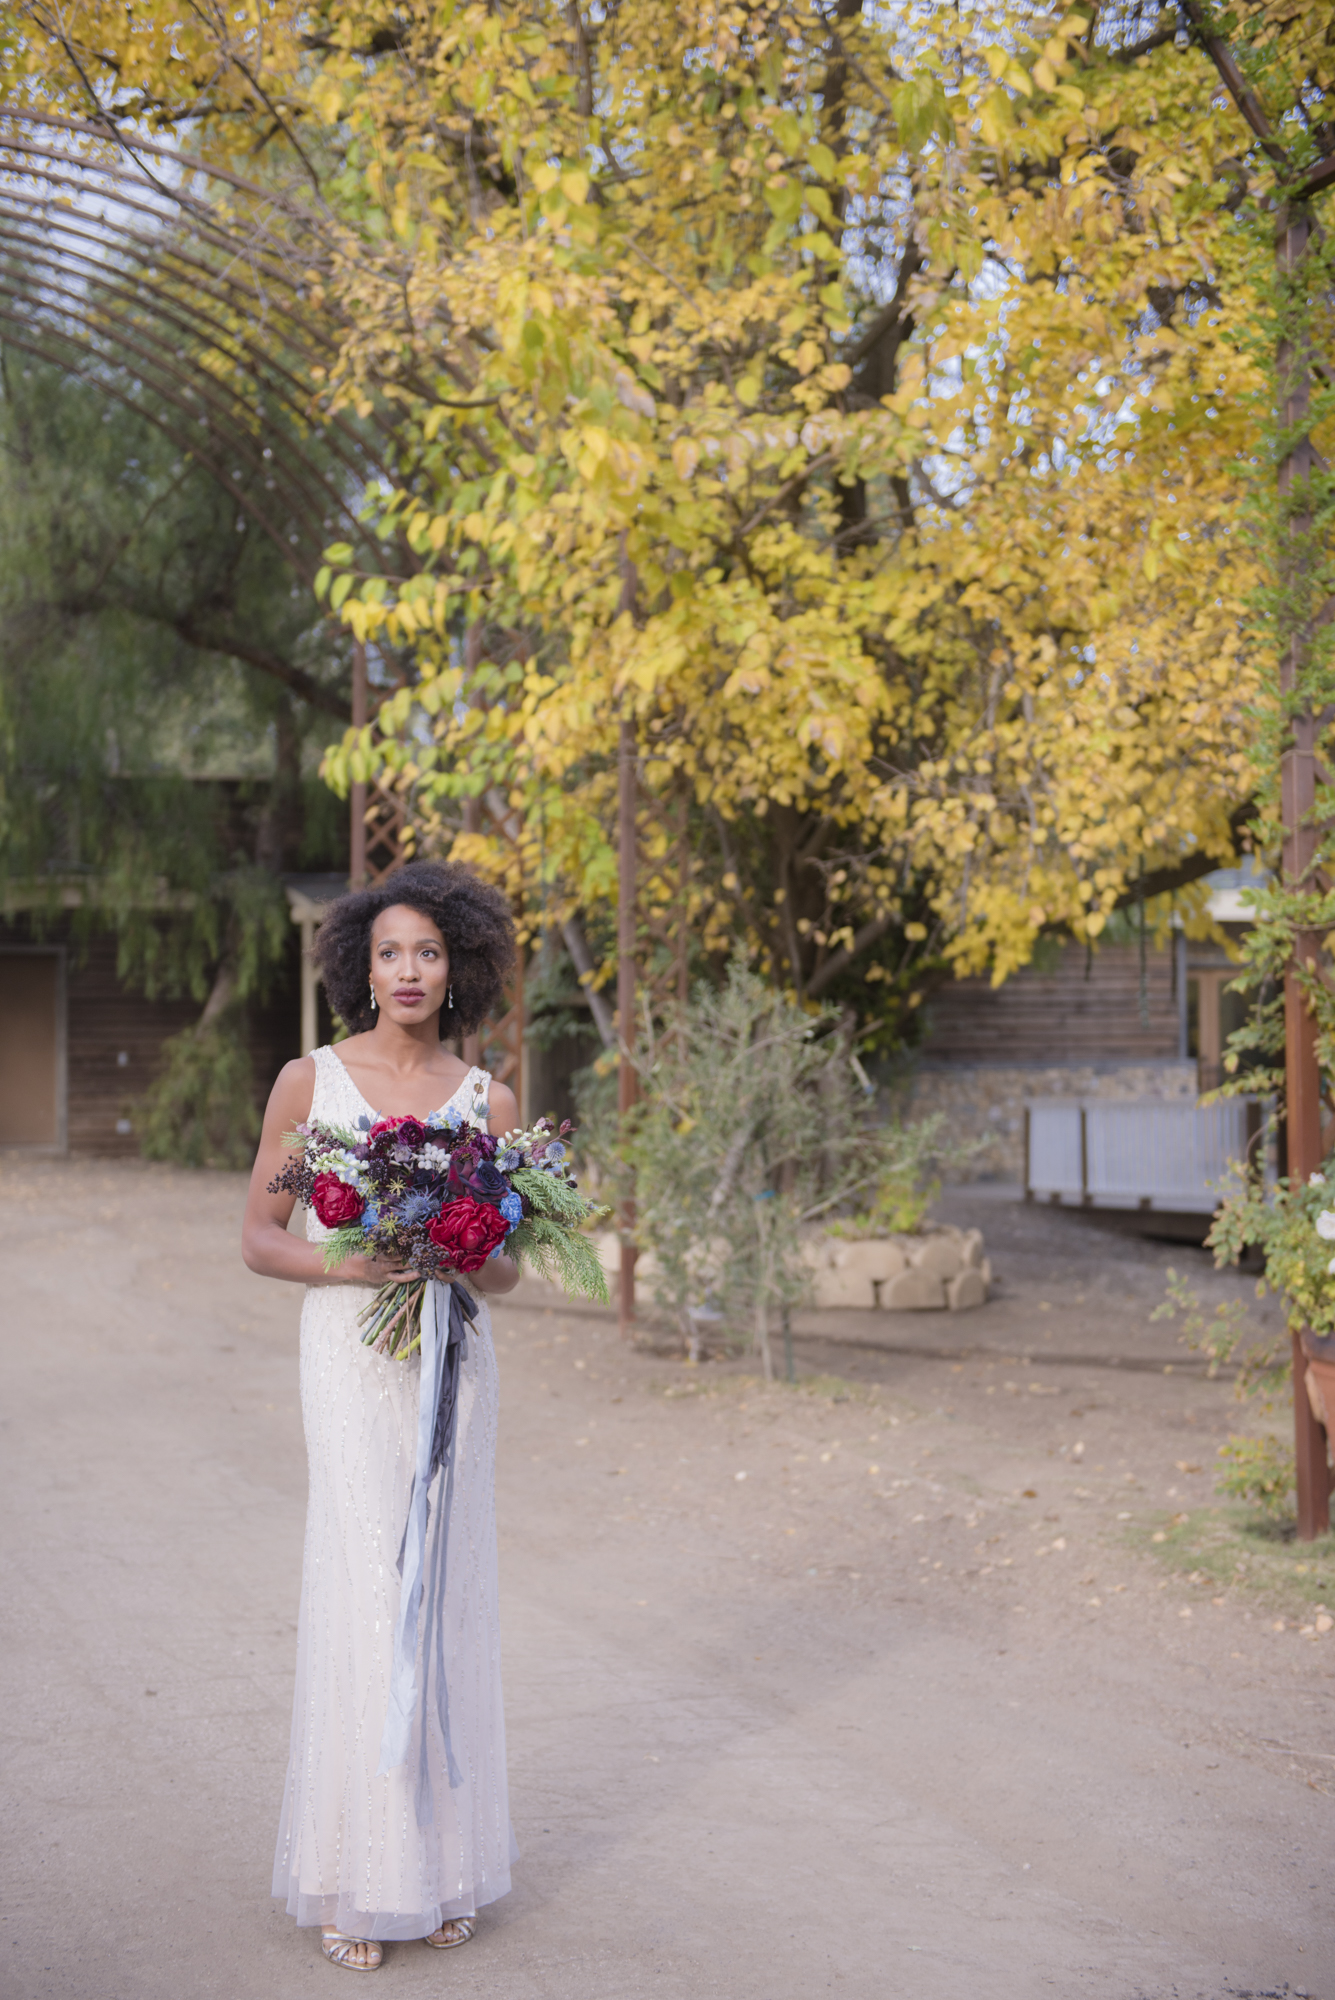 arthousephotographs.com | Calamigos Ranch Wedding| Los Angeles Wedding Photographer | Seattle Wedding Photographer | Southern California Wedding Photographer | Arthouse Photographs